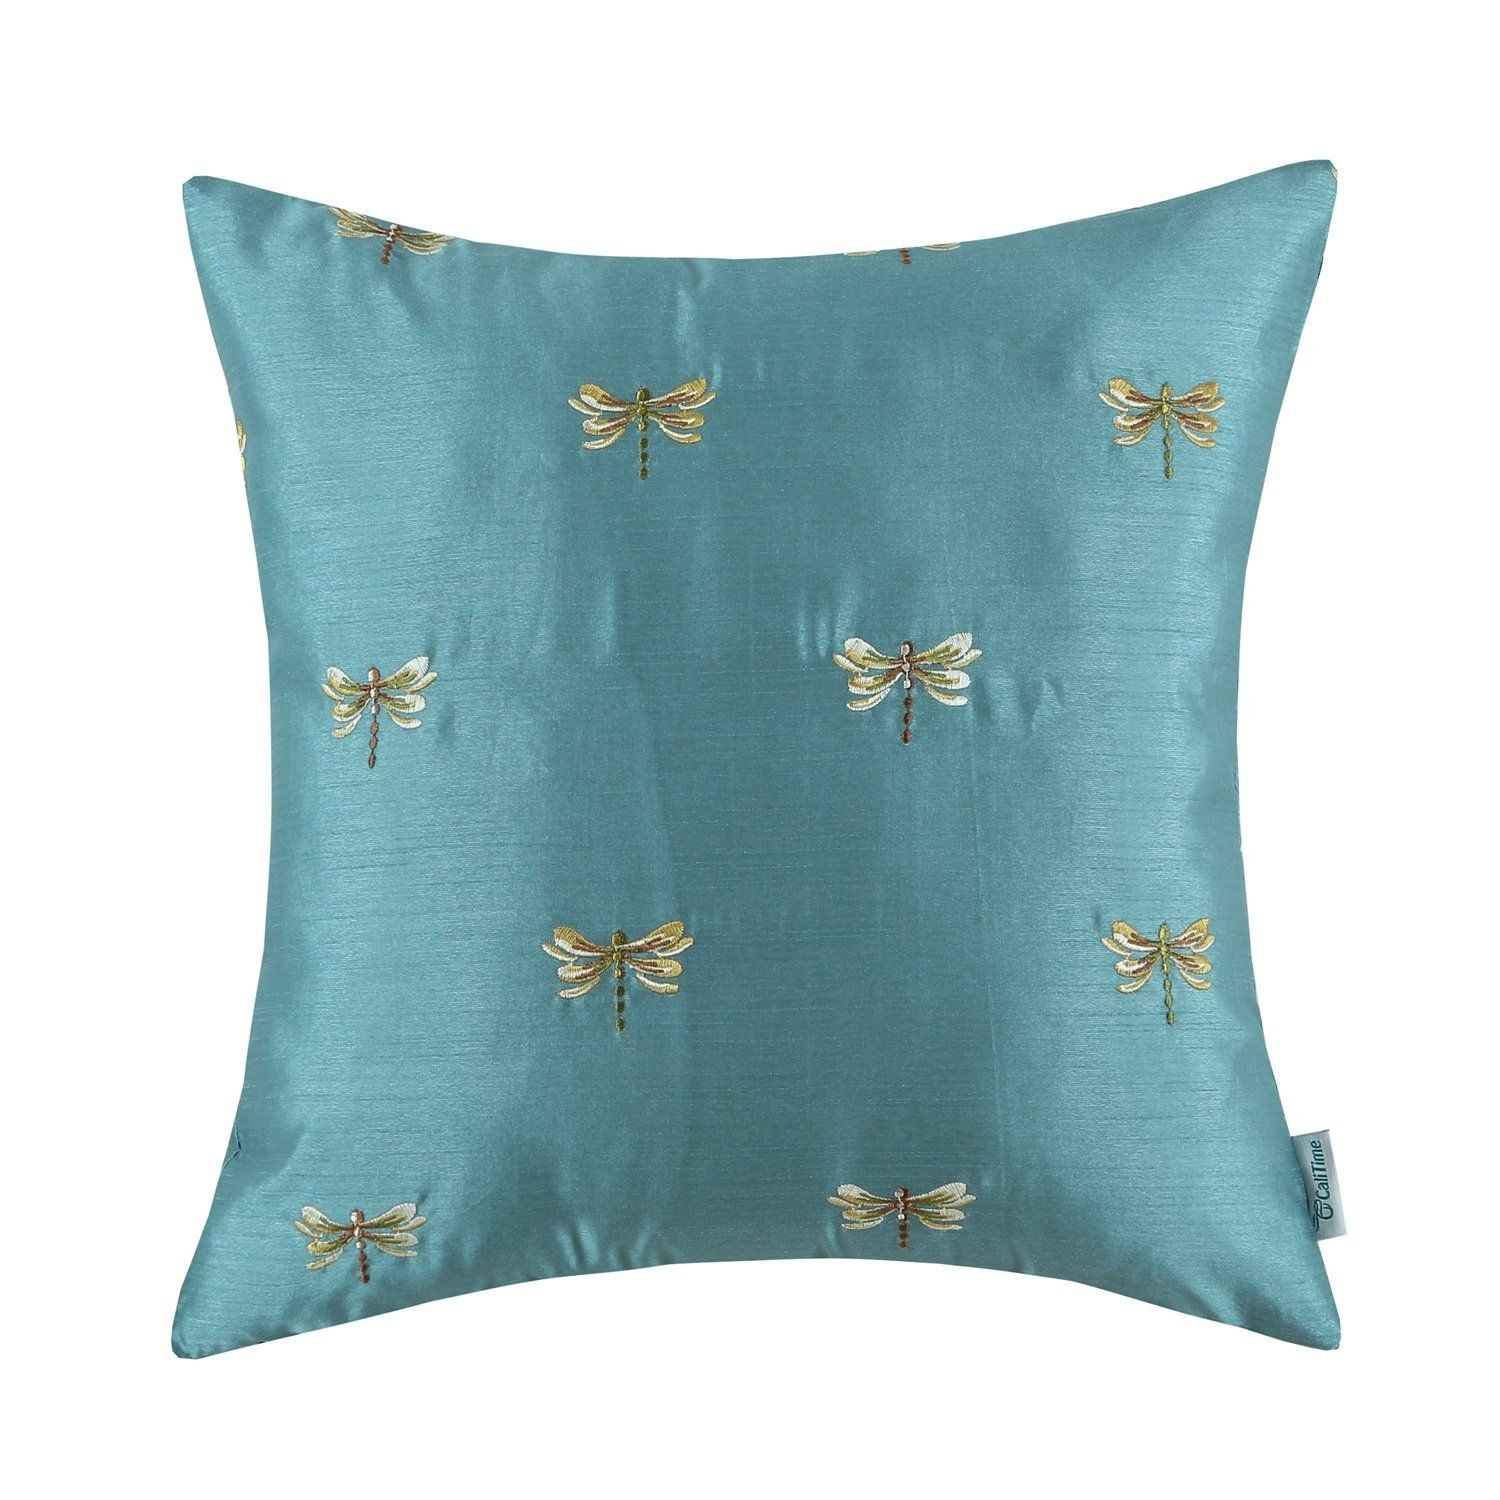 Euphoria CaliTime Contempo Home Decorative Throw Pillow Cushion Cover  Pillowcase Shell Faux Silk Vivid Dragonflies Embroidered Teal Color X